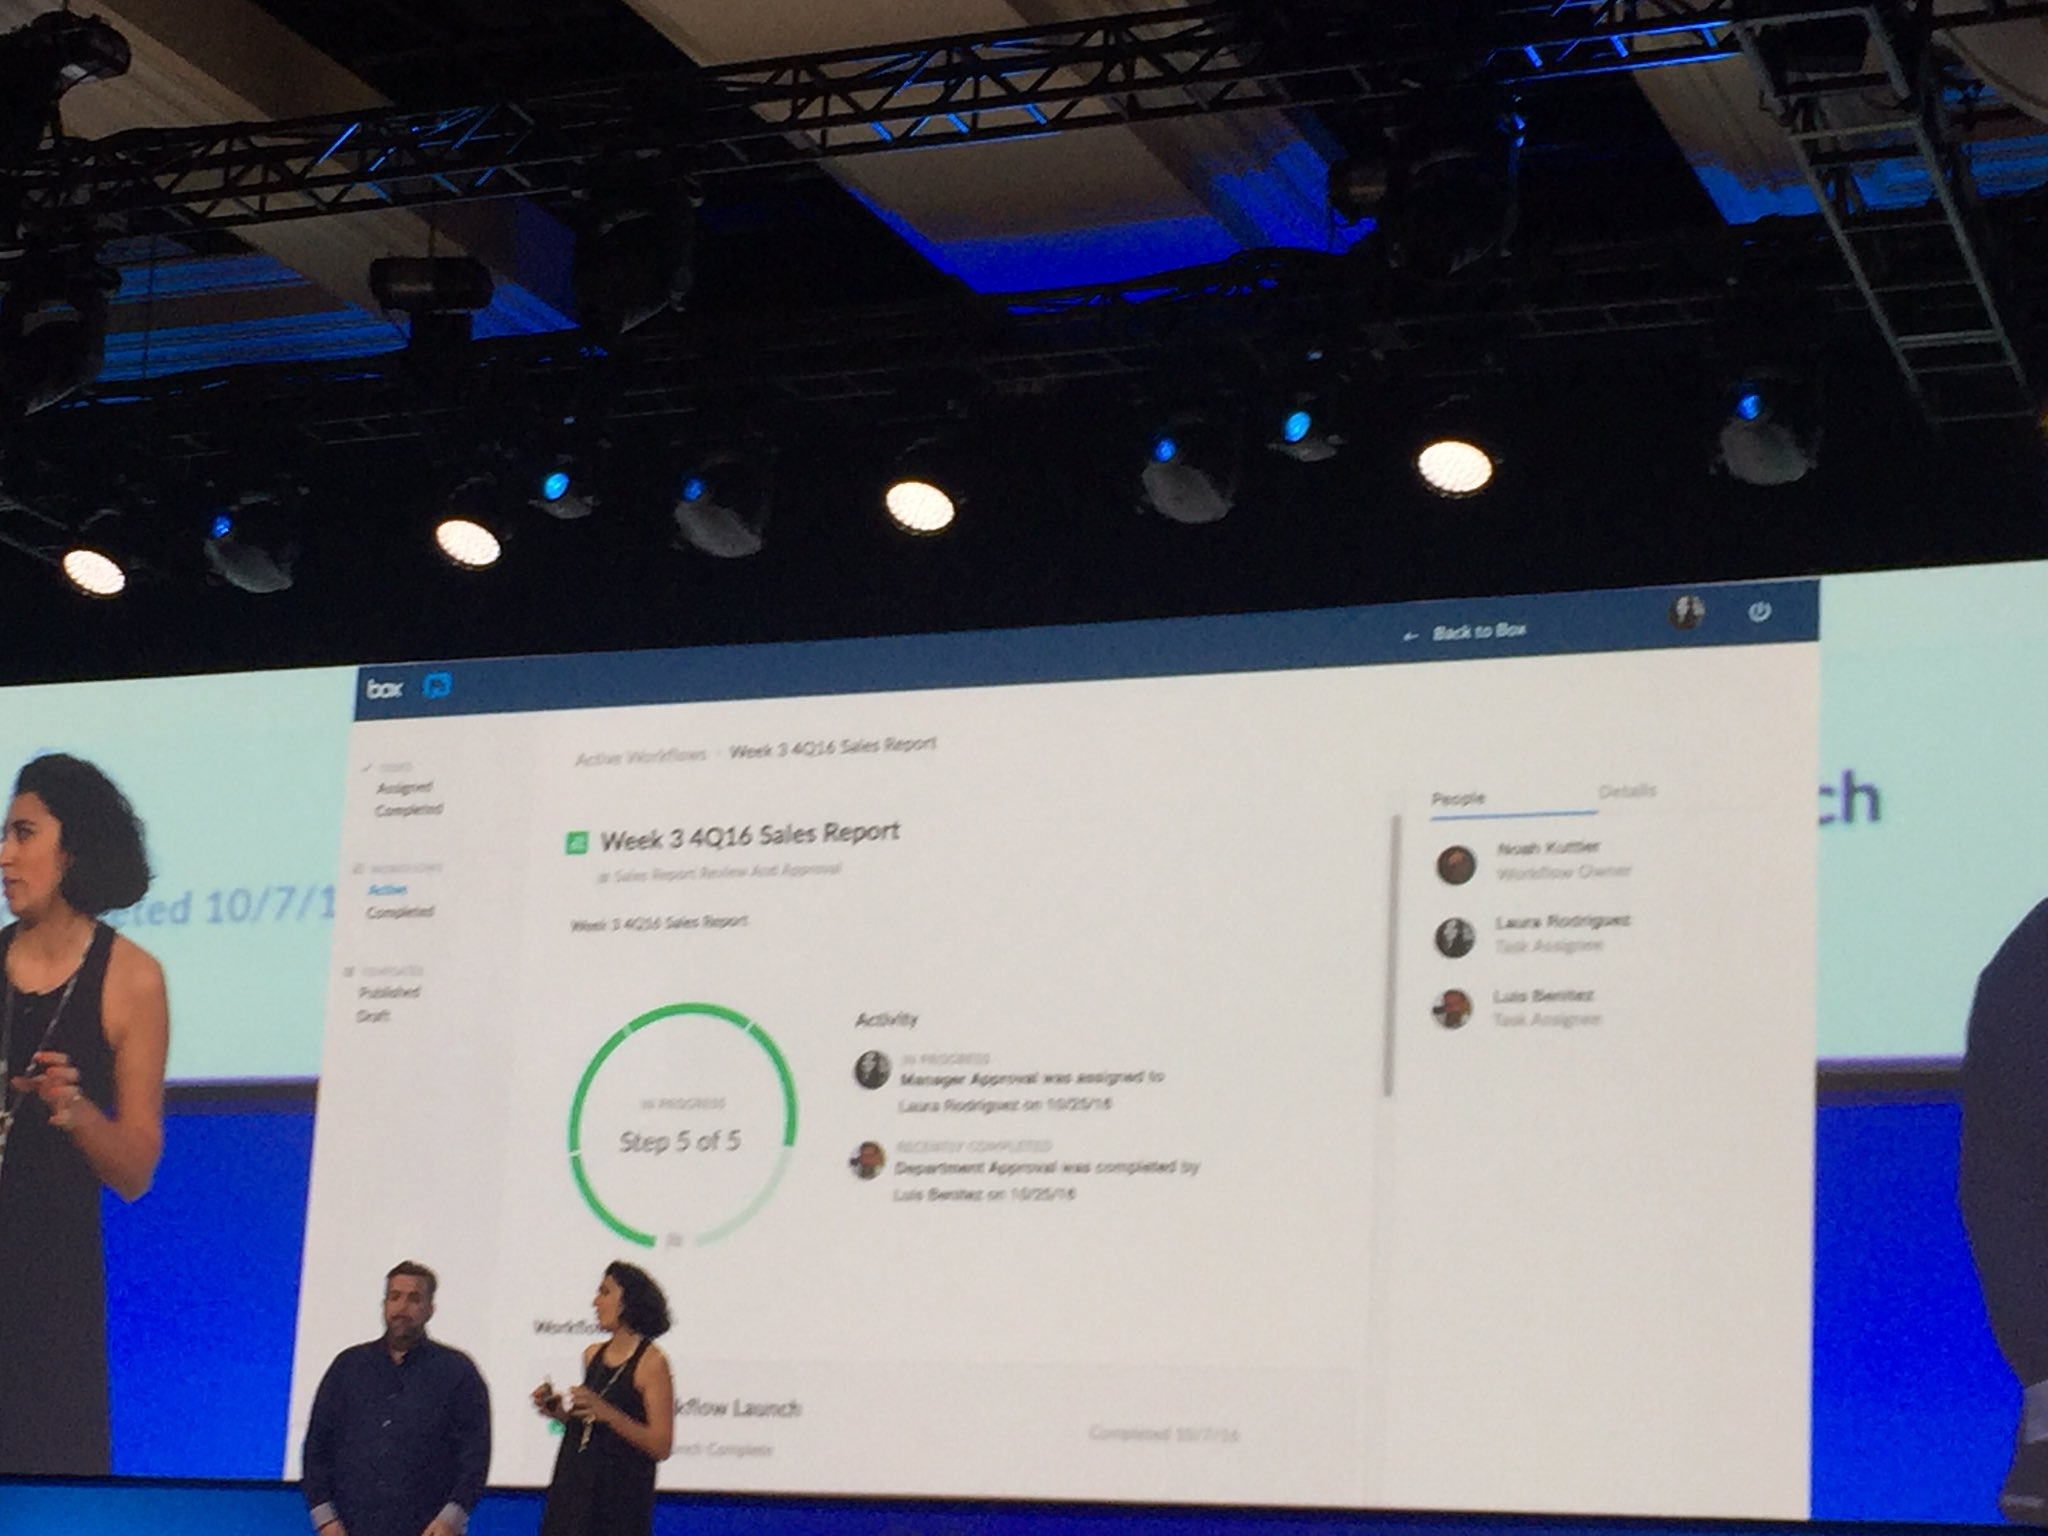 Box Relay and IBM Watson Workspace are reshaping the way we work #ibmwow #IBMandBox https://t.co/UesmWDMe6w